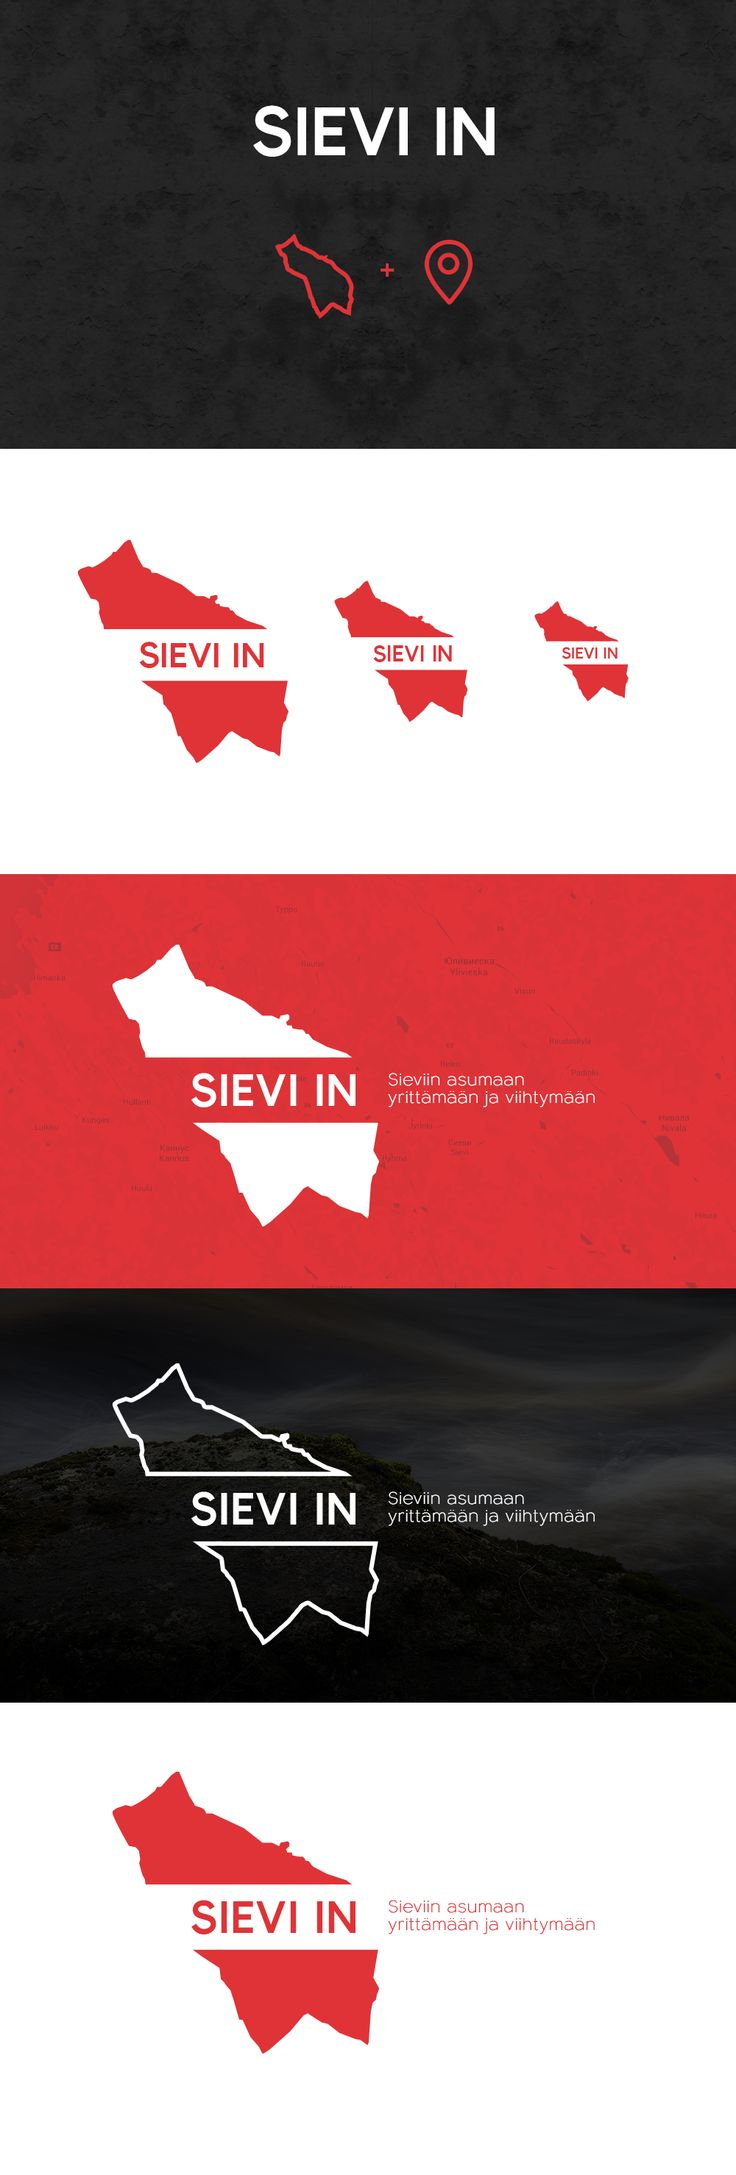 Sievi In - Logotype Preview Mode - InVision